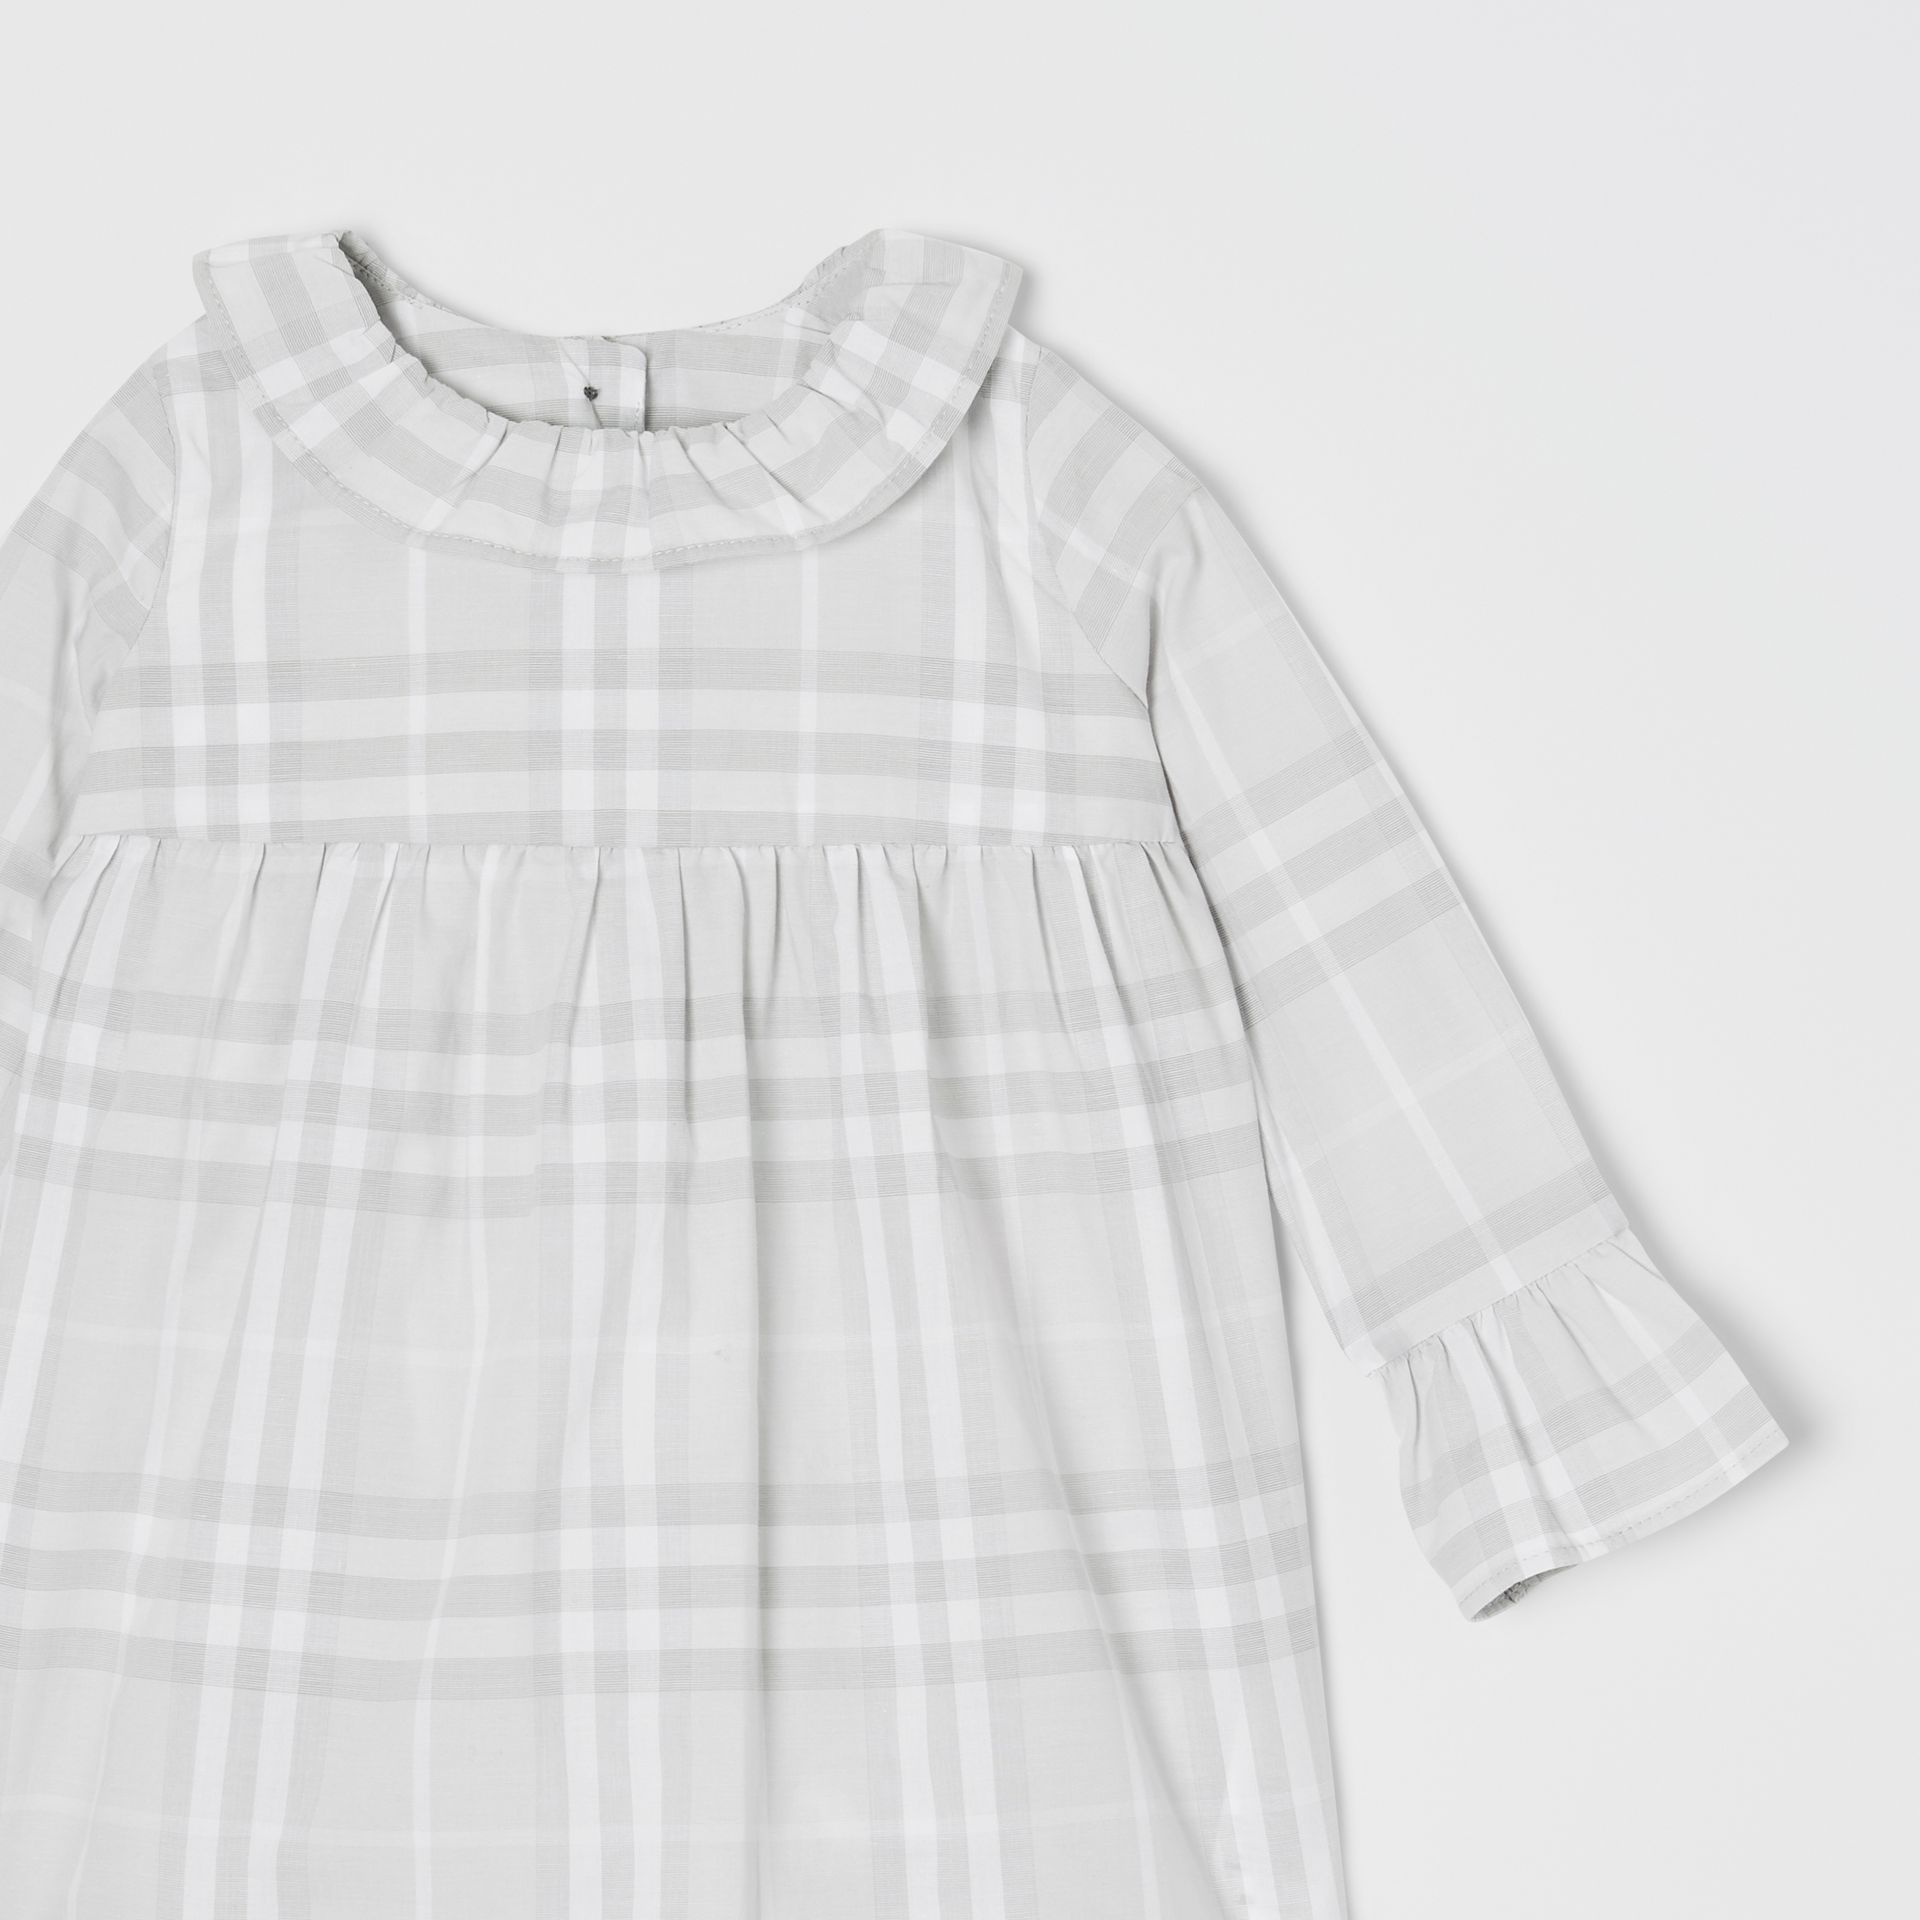 Long-sleeve Vintage Check Cotton Dress in Pale Grey - Children | Burberry - gallery image 4